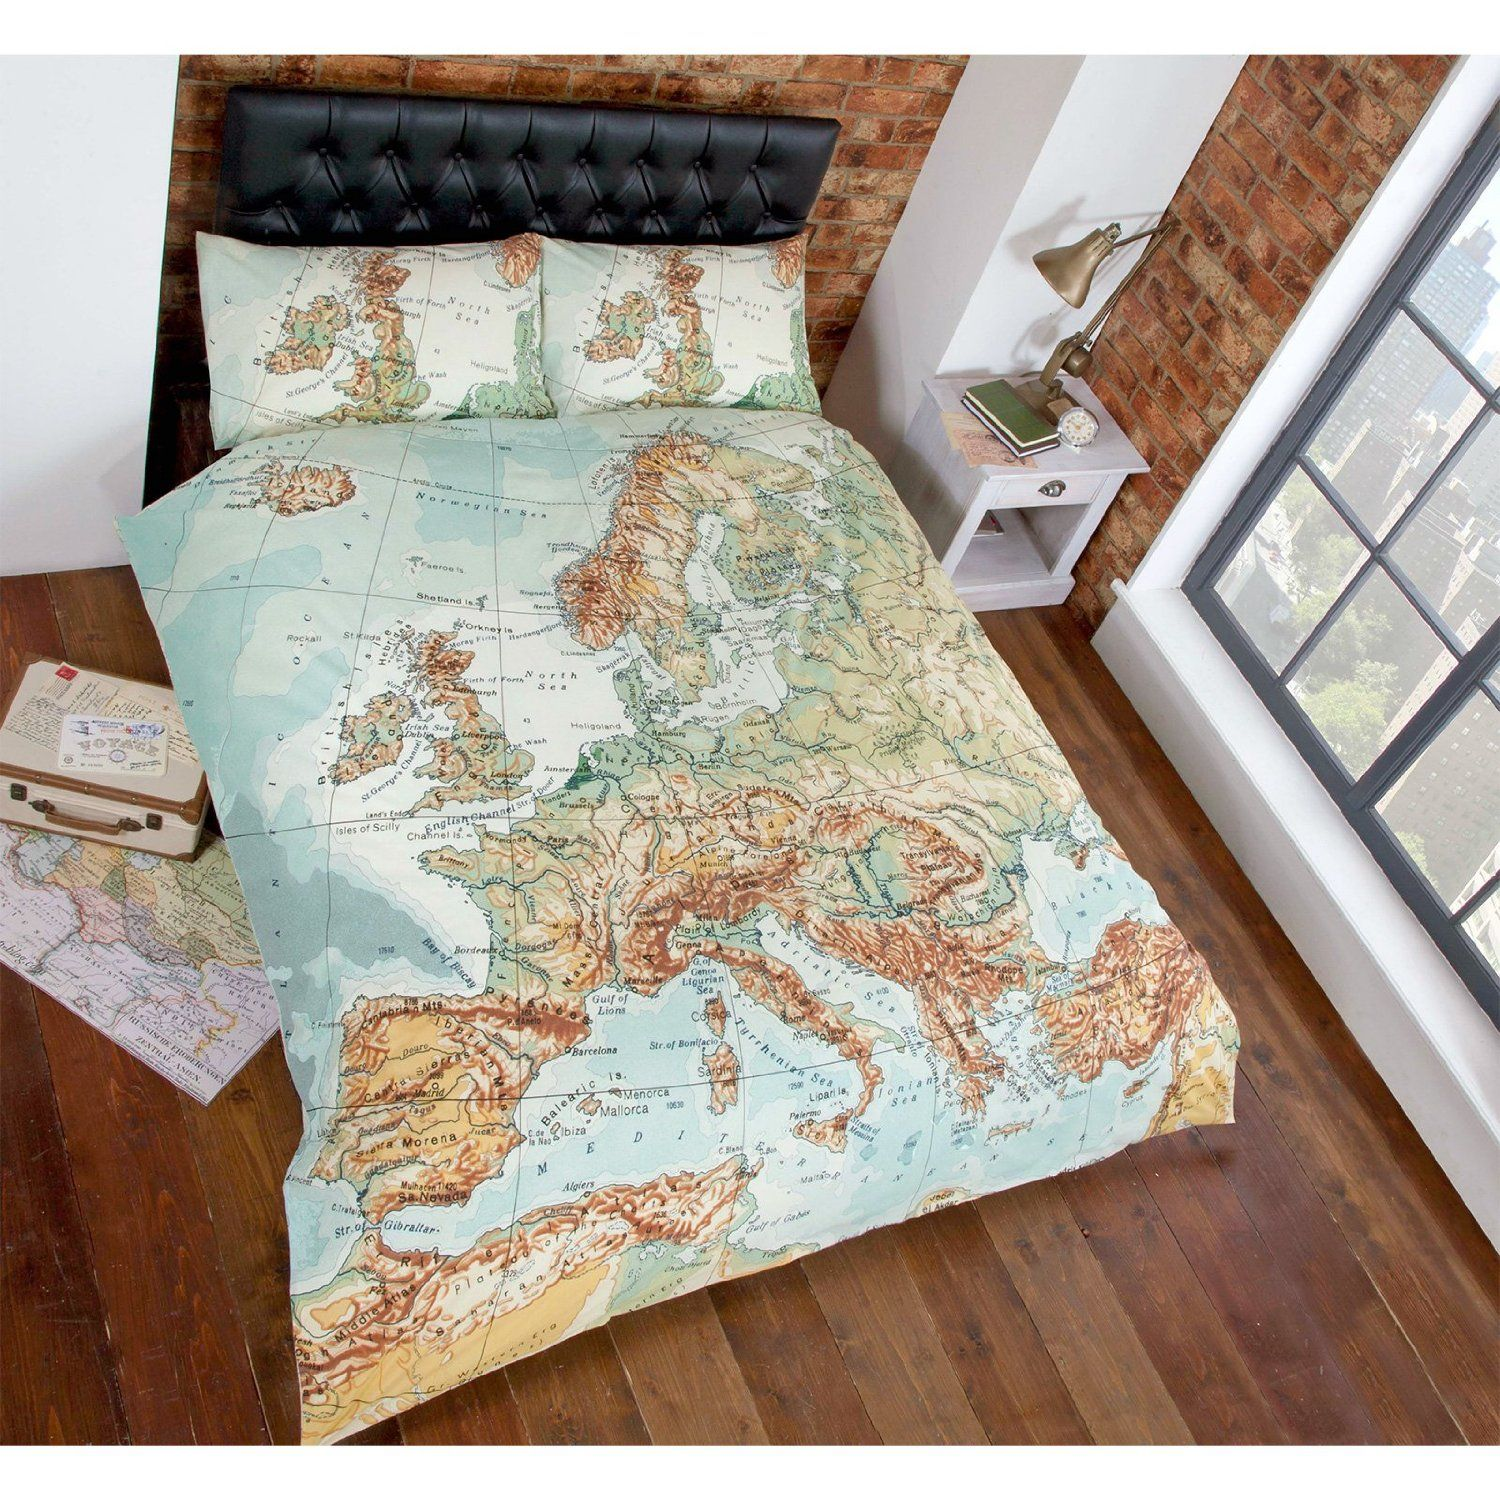 Just contempo vintage map duvet cover set king green amazon vintage world map duvet cover reversible bedding natural blue green bed set gumiabroncs Gallery